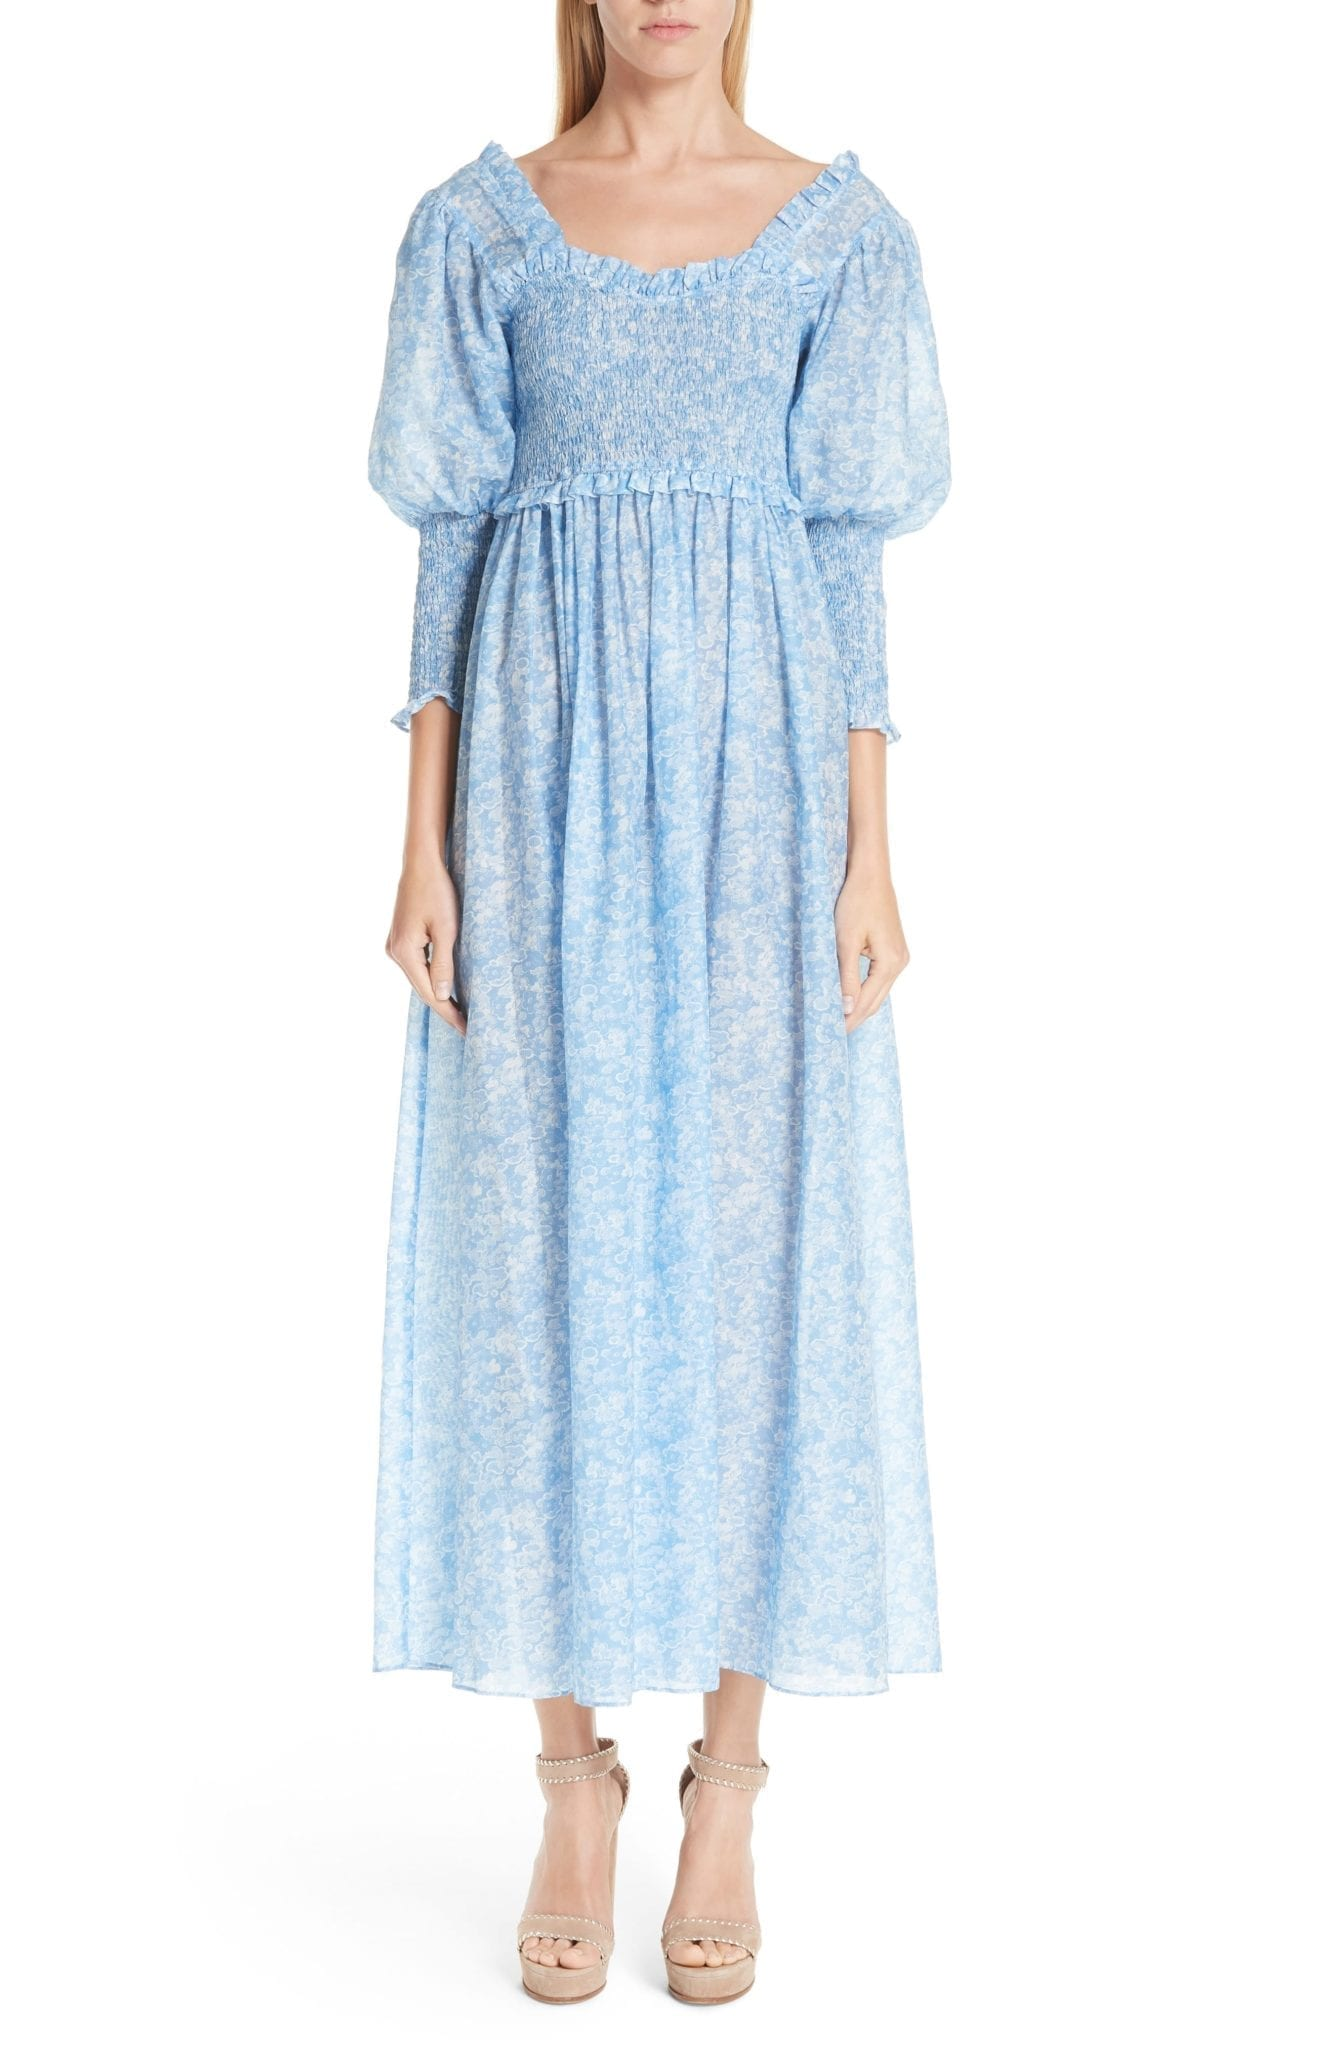 GANNI Floral Smocked Maxi Serenity Blue Dress